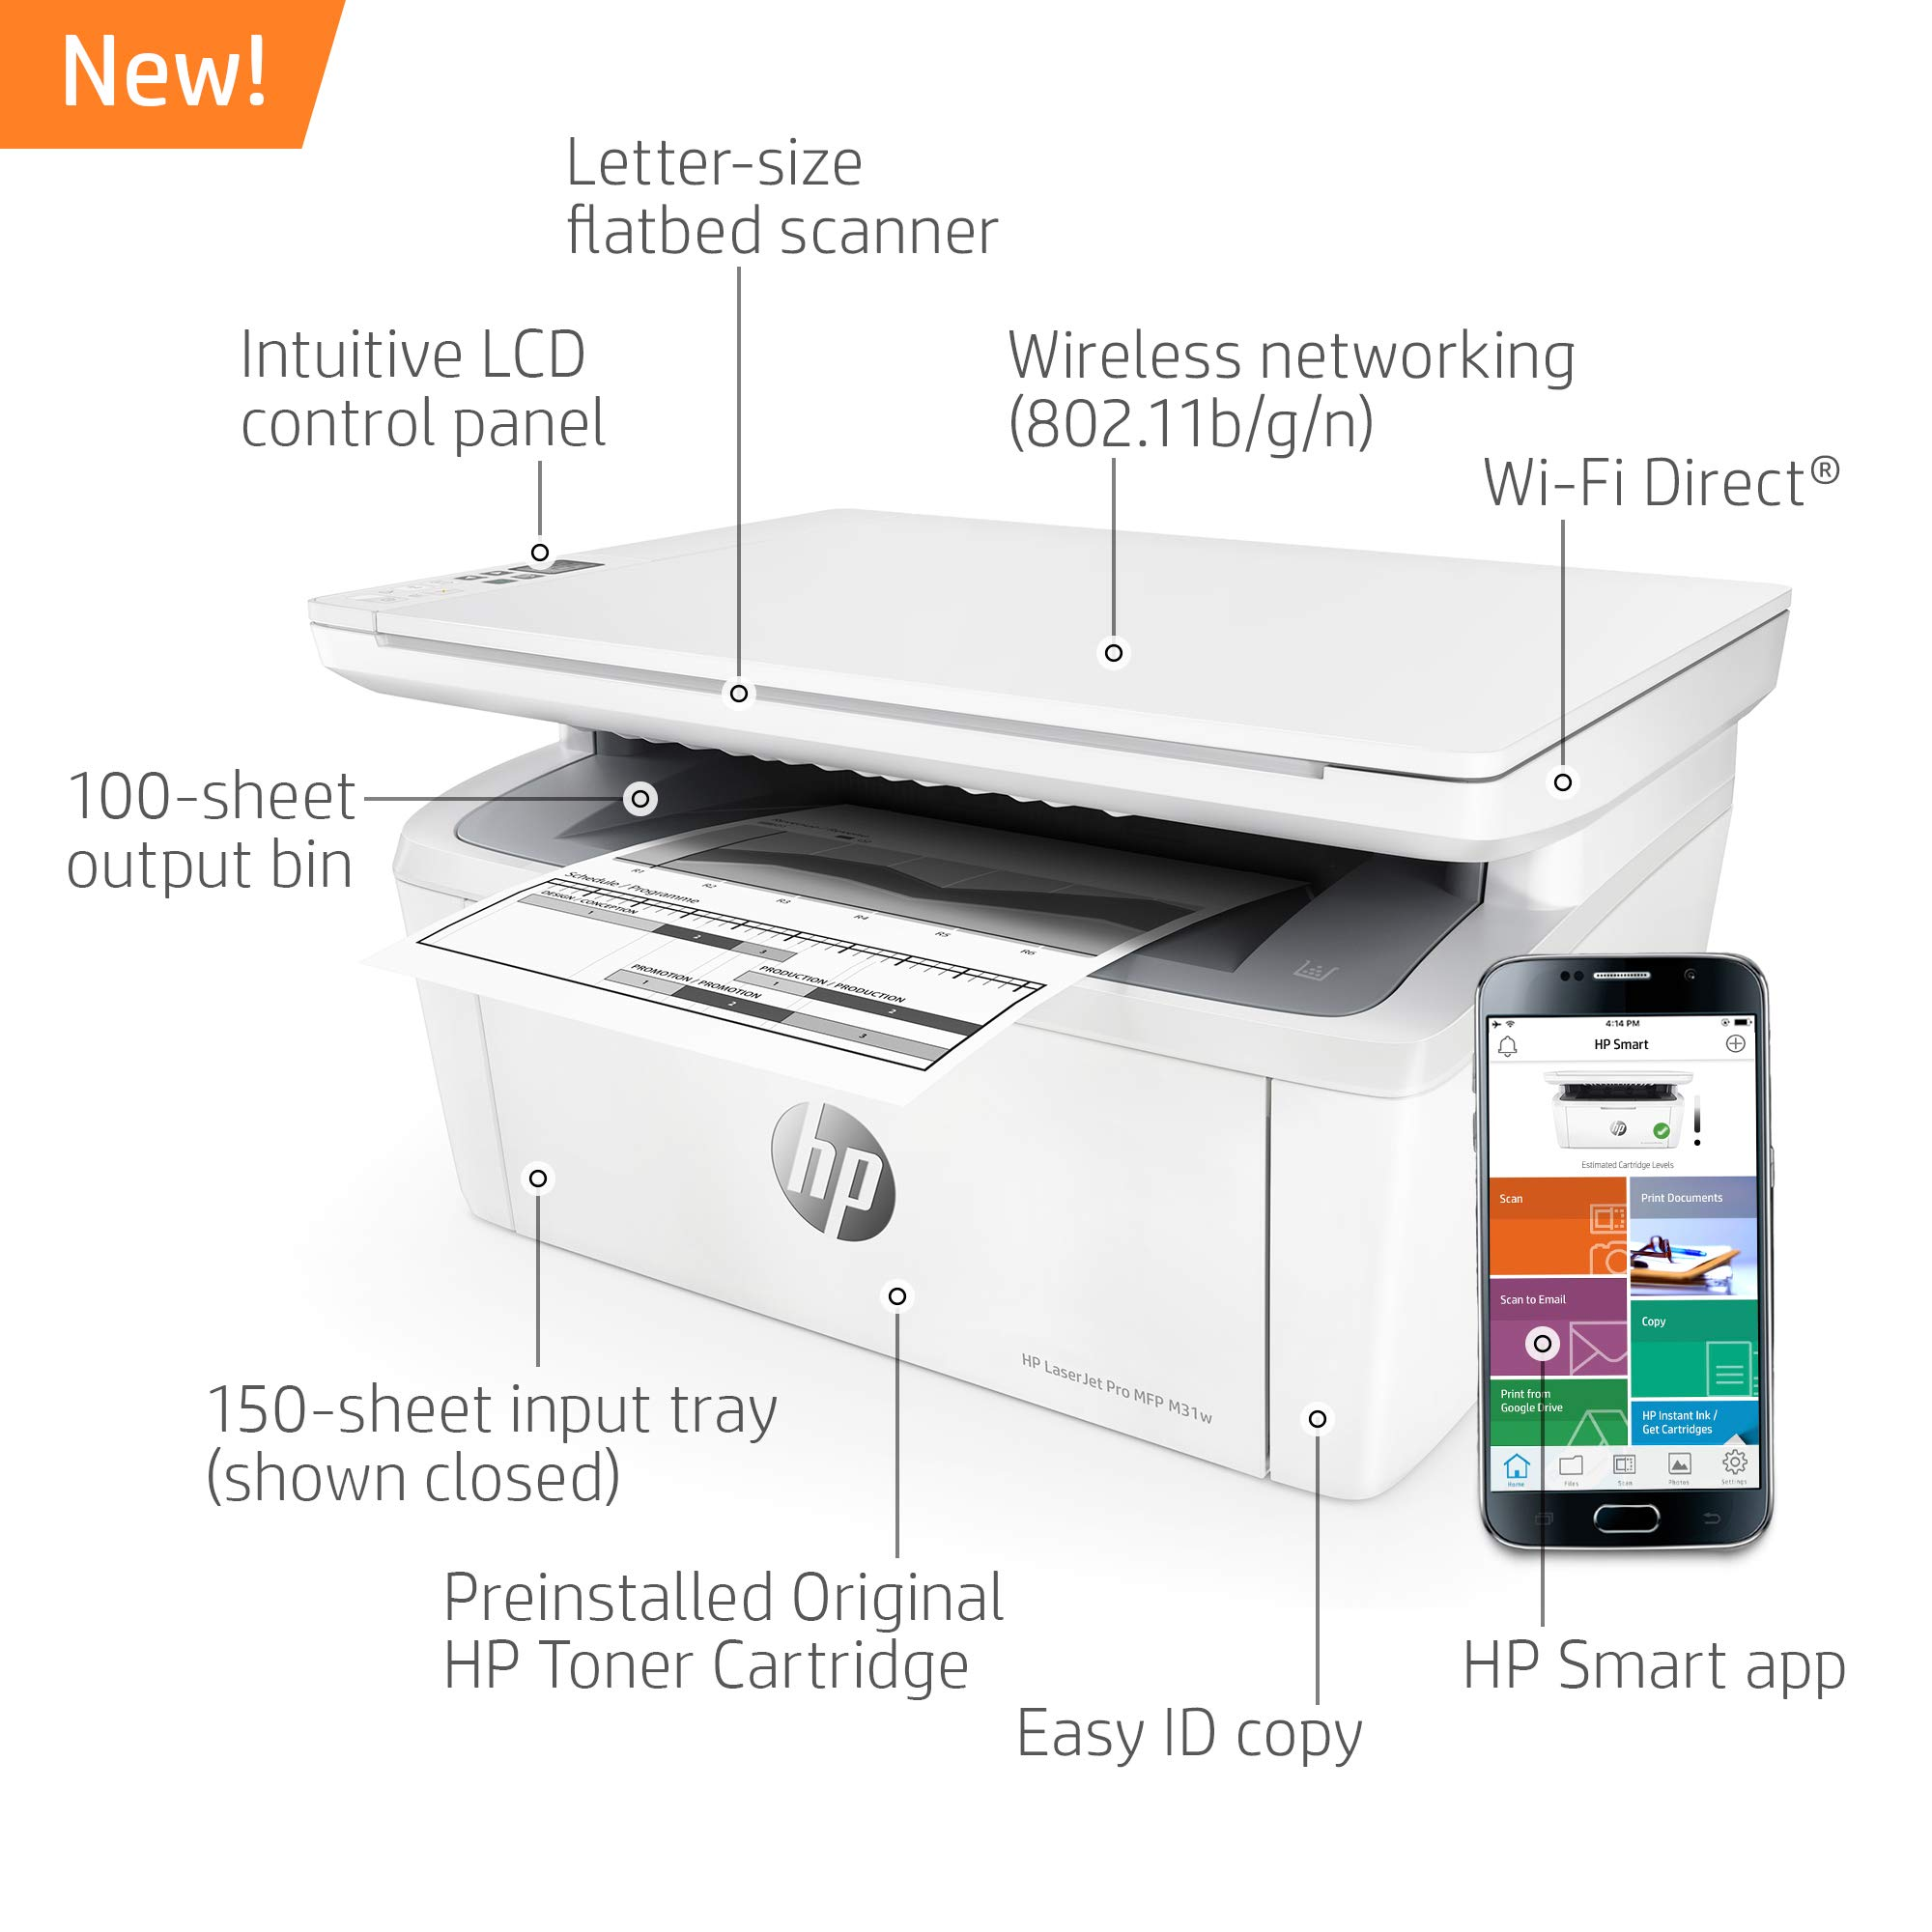 HP Laserjet Pro M31w All-in-One Wireless Monochrome Laser Printer with Mobile Printing (Y5S55A) by HP (Image #3)